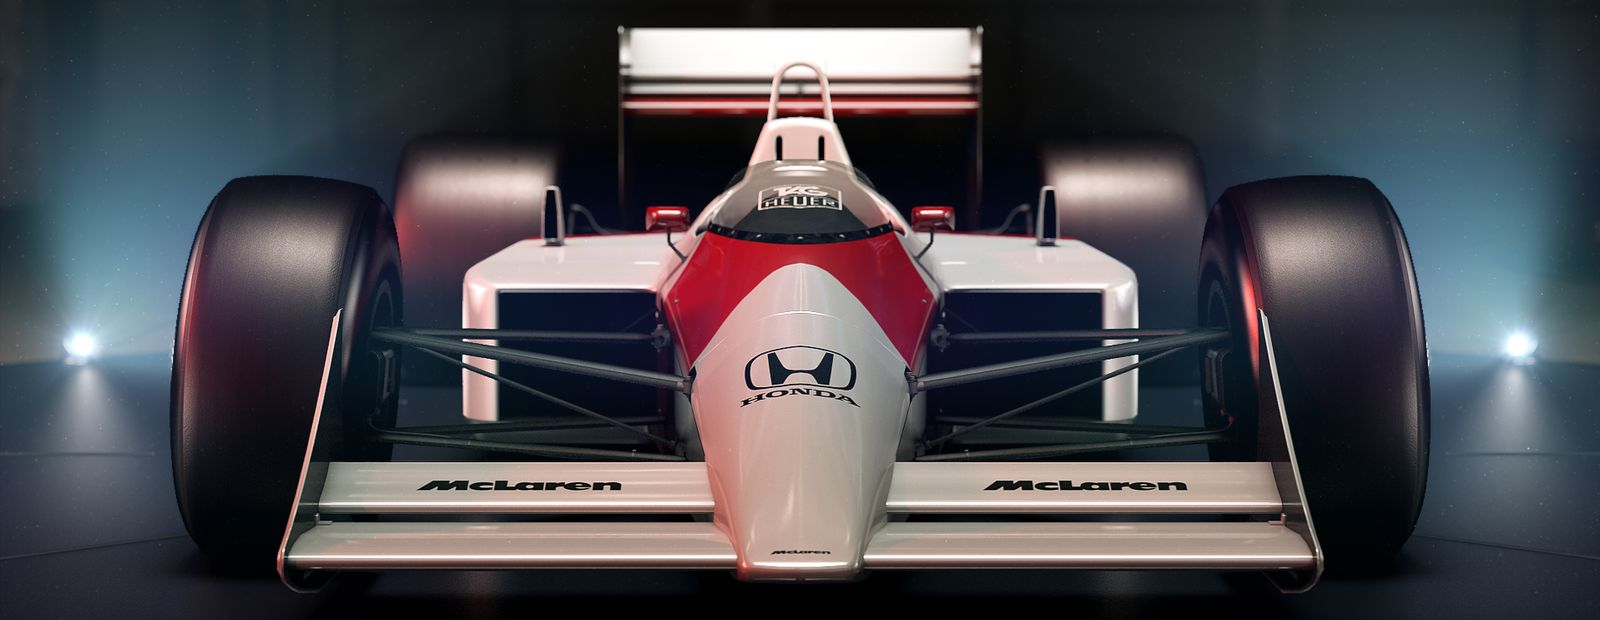 F1 2017 game to feature iconic cars of the past